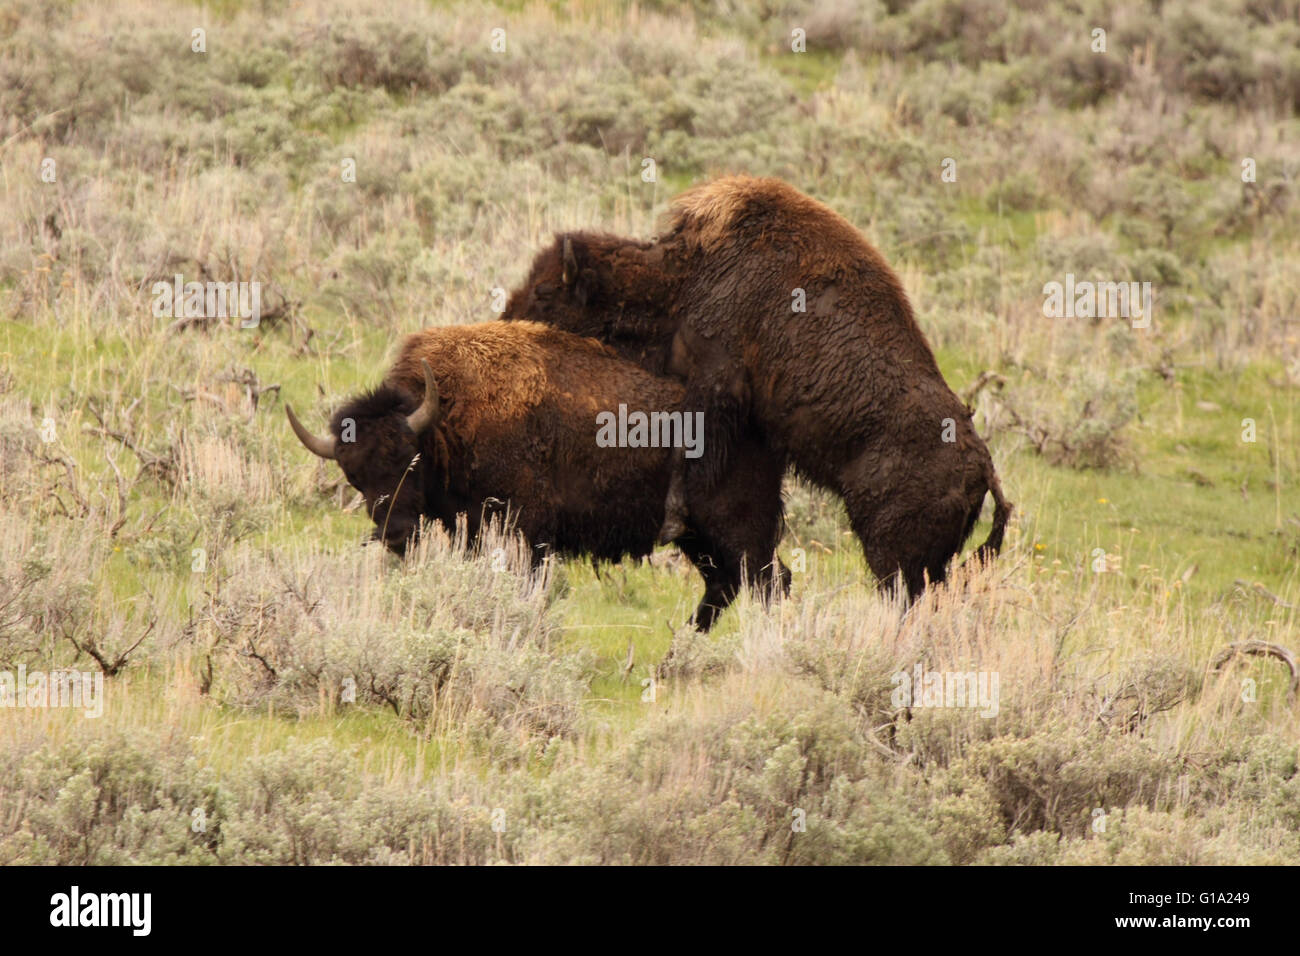 The dominance display of American Bison. - Stock Image